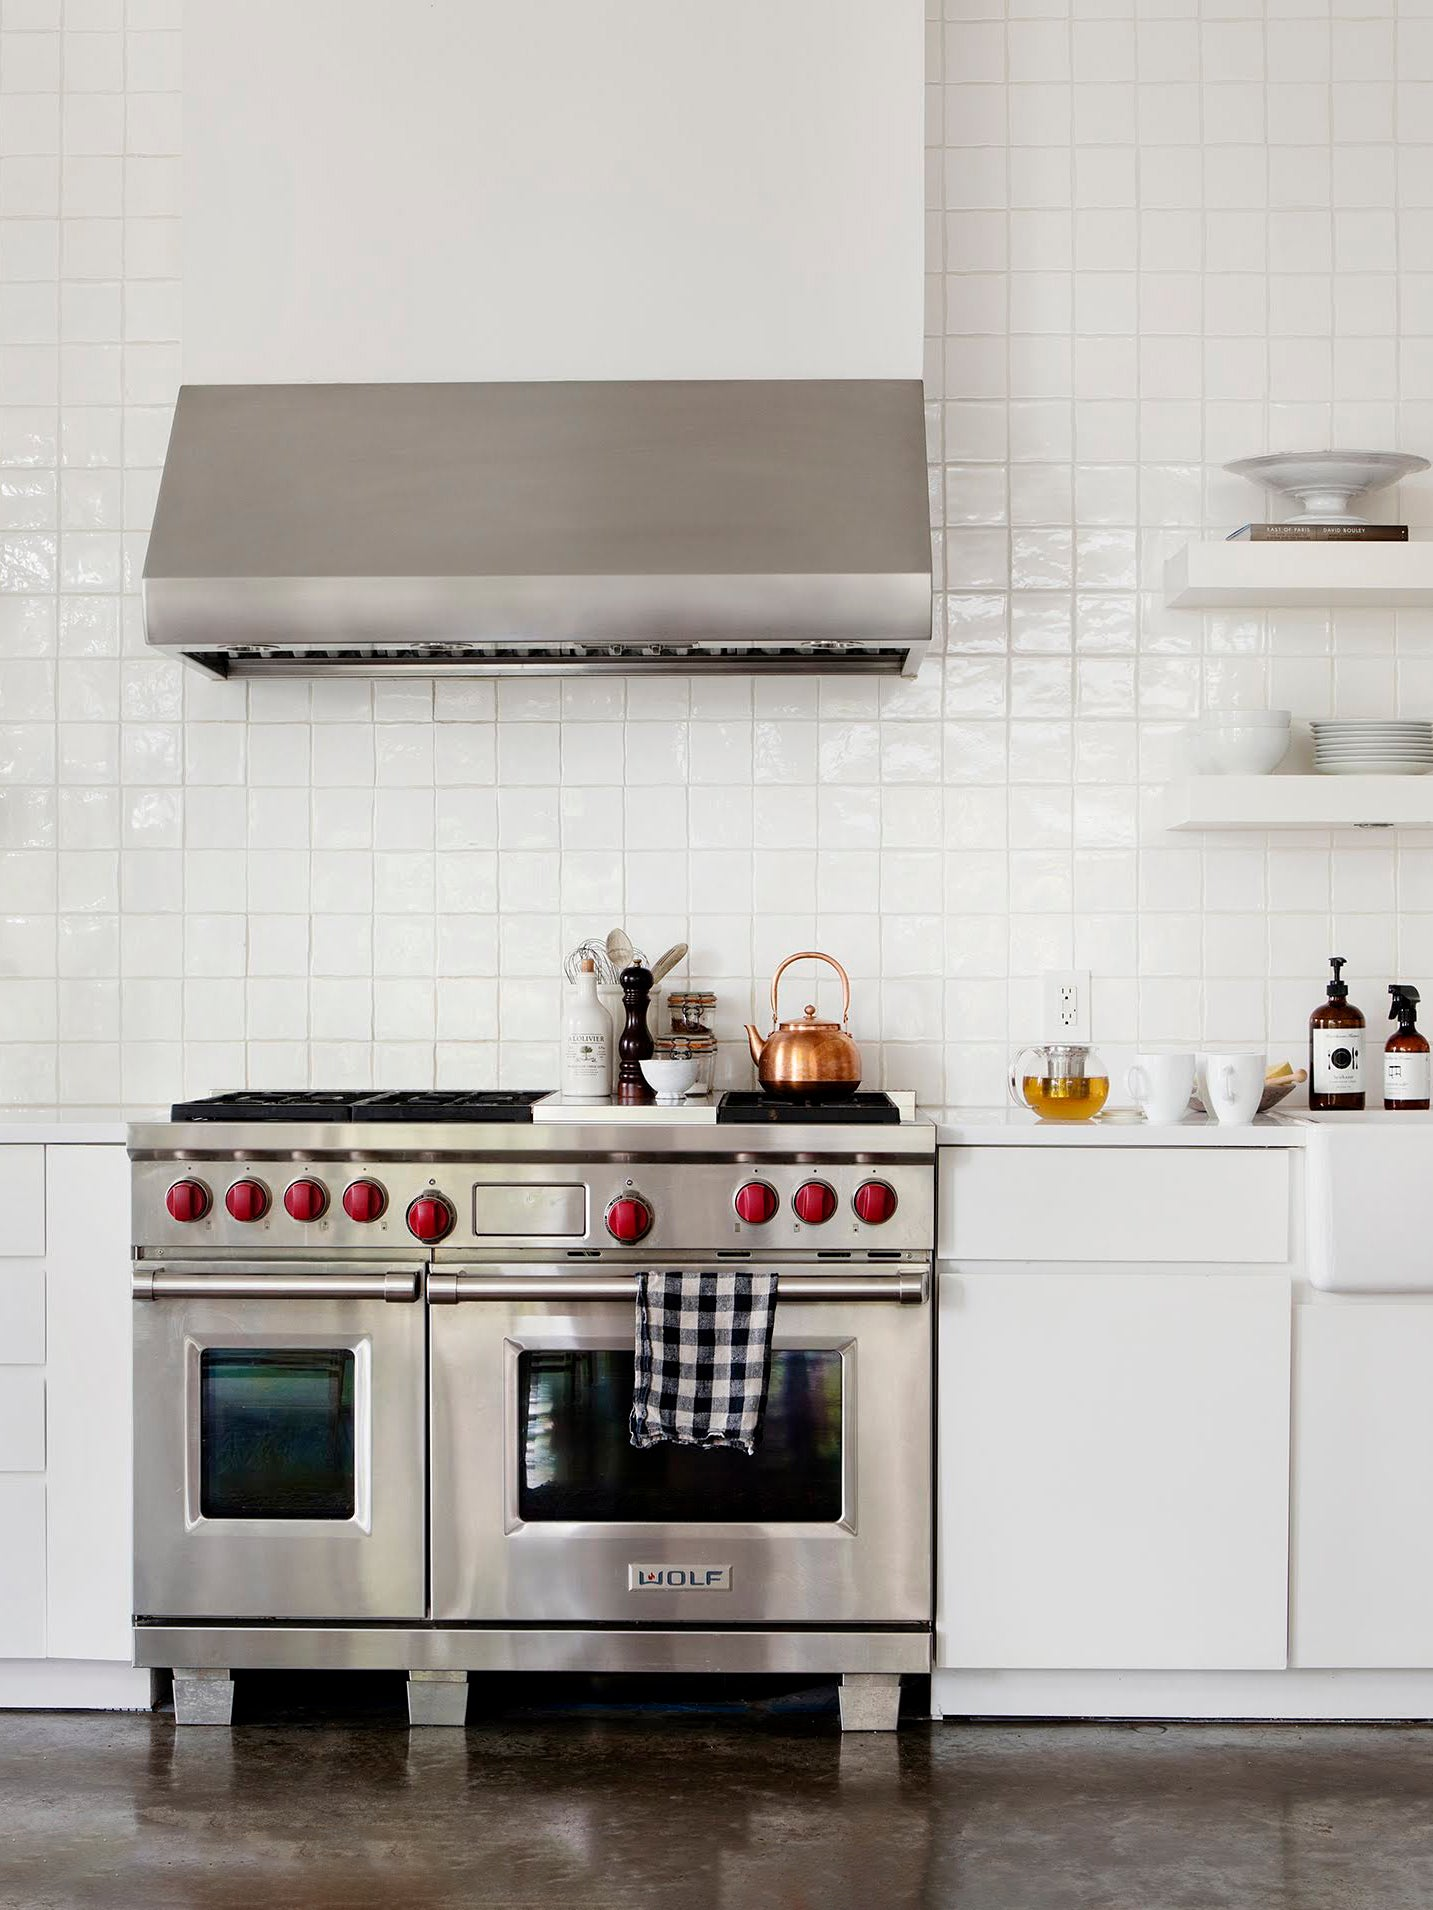 How to Organize Your Kitchen, According to a Former Private Chef